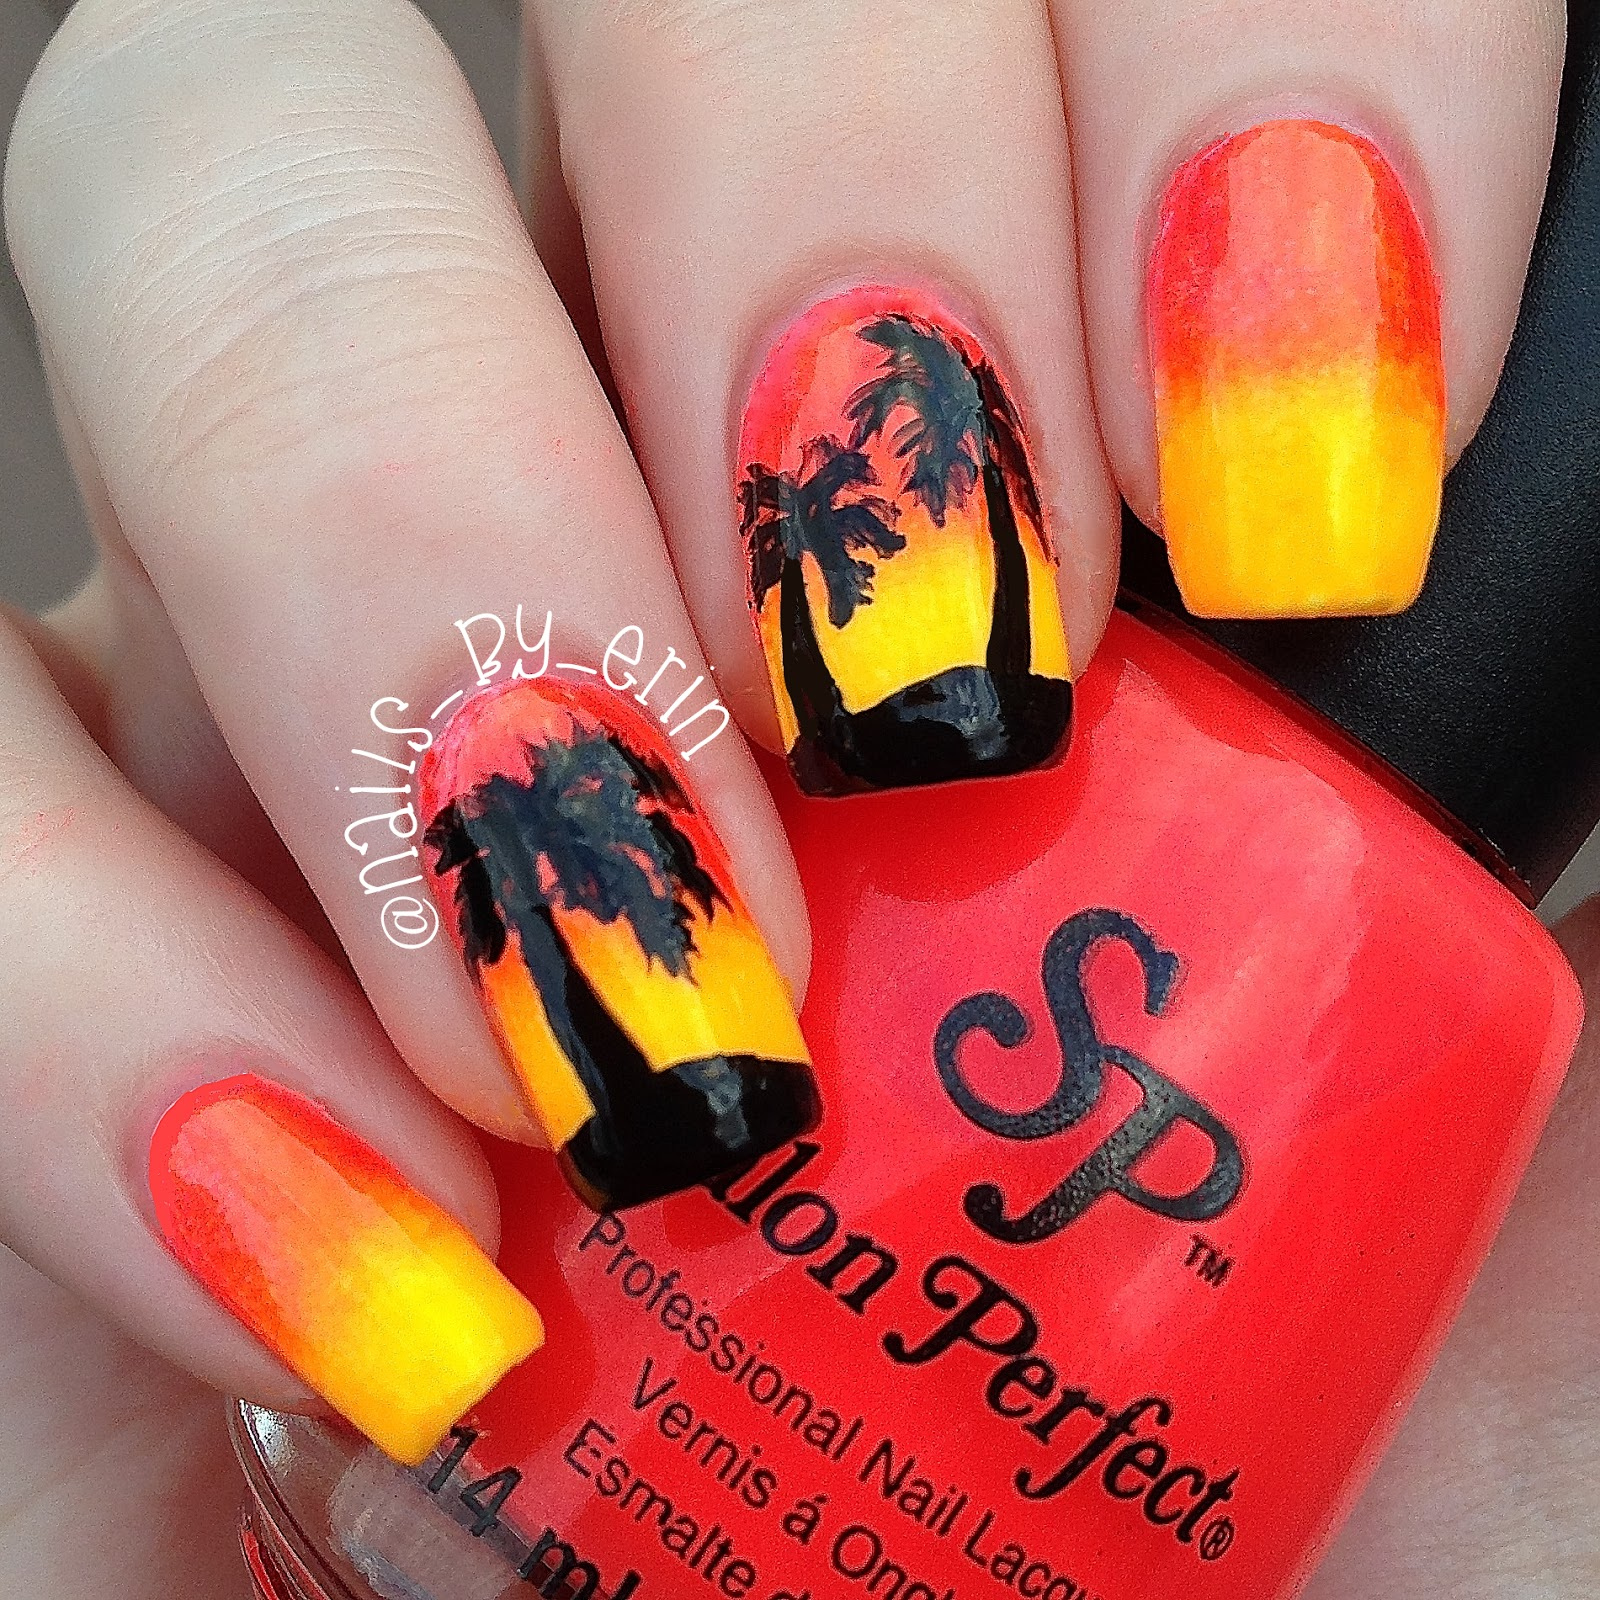 Knew That They Would Make A Perfect Summer Y Gradient I Topped The Finished With Some Palm Trees Painted Acrylic Paint